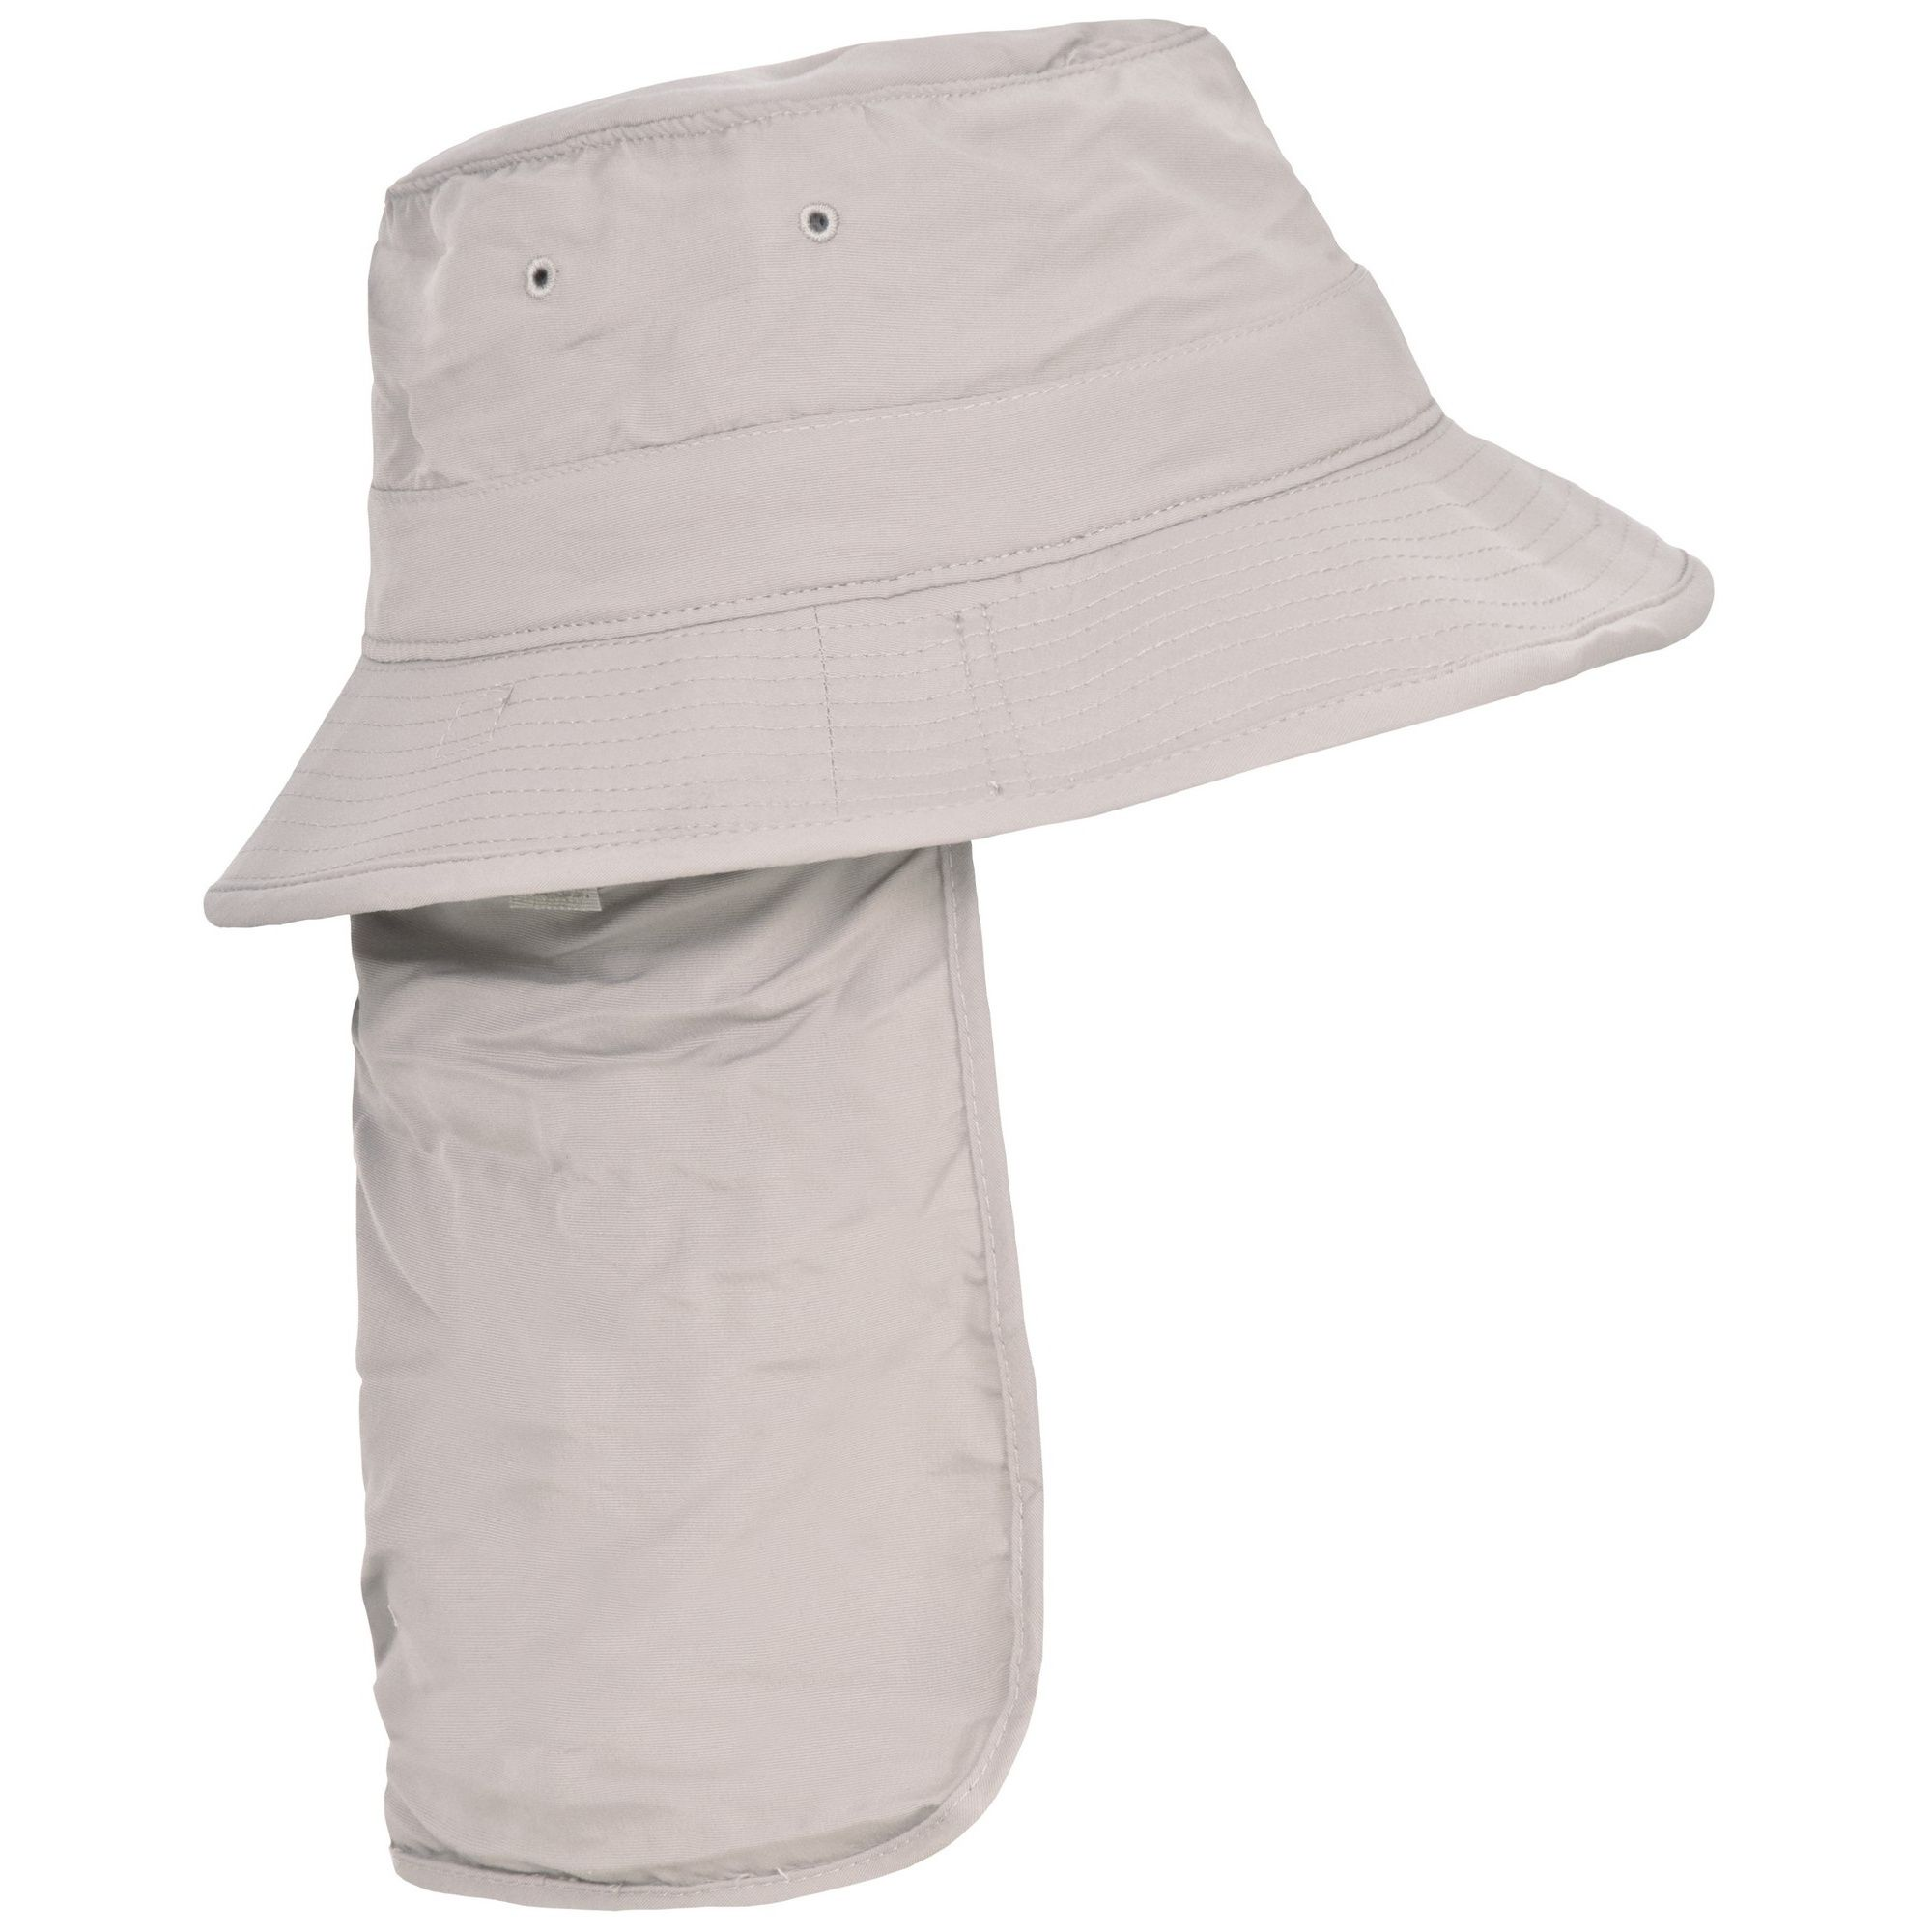 Trespass Adults Unisex Bearing Bucket Hat With Neck Protector